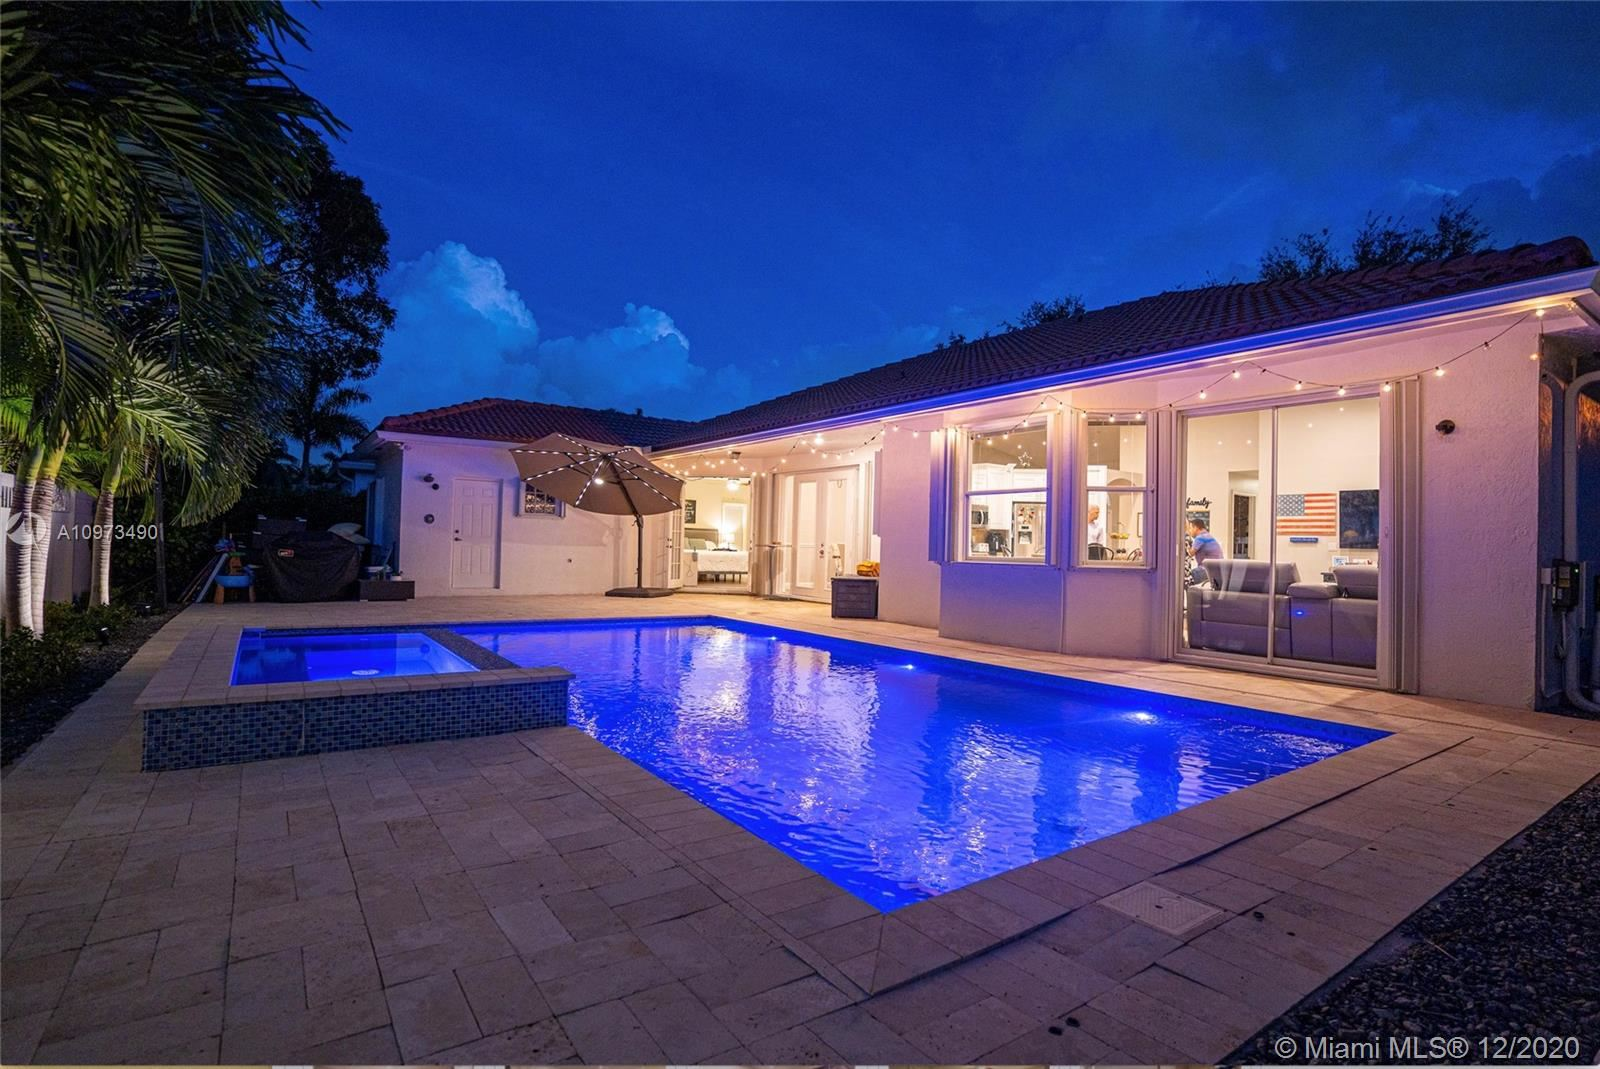 10369 NW 52nd St, Coral Springs, FL 33076 - #: A10973490